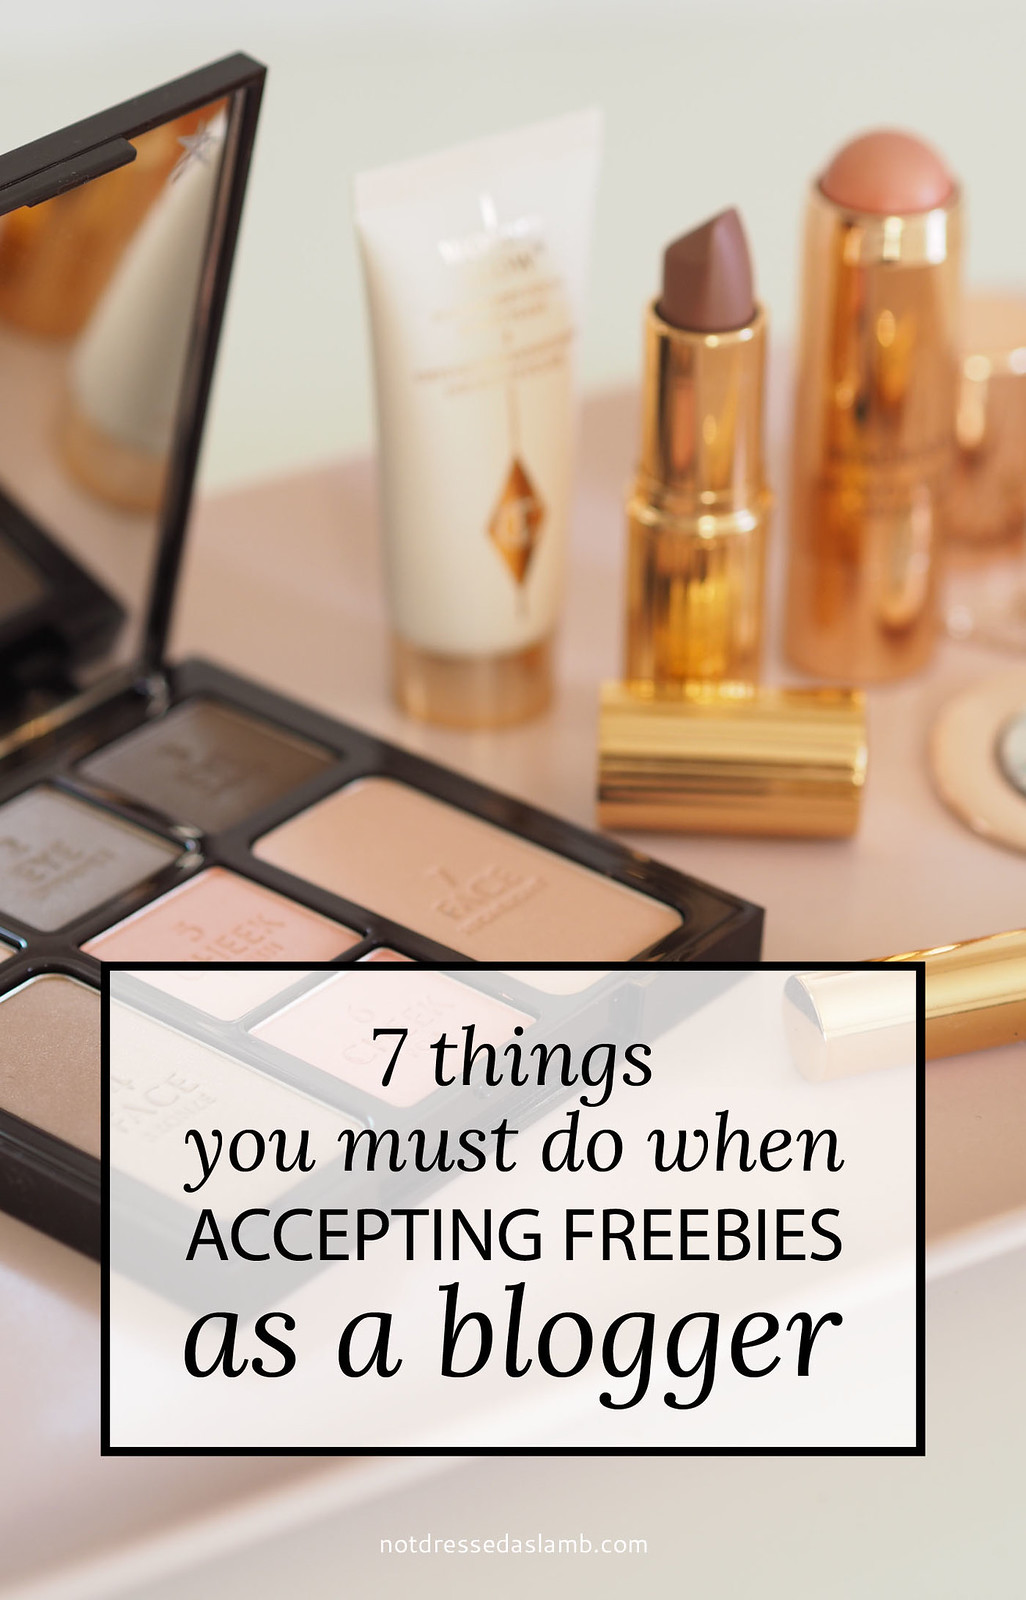 7 Things You Must Do When Accepting Freebies As a Blogger (pictured: Charlotte Tilbury make up)